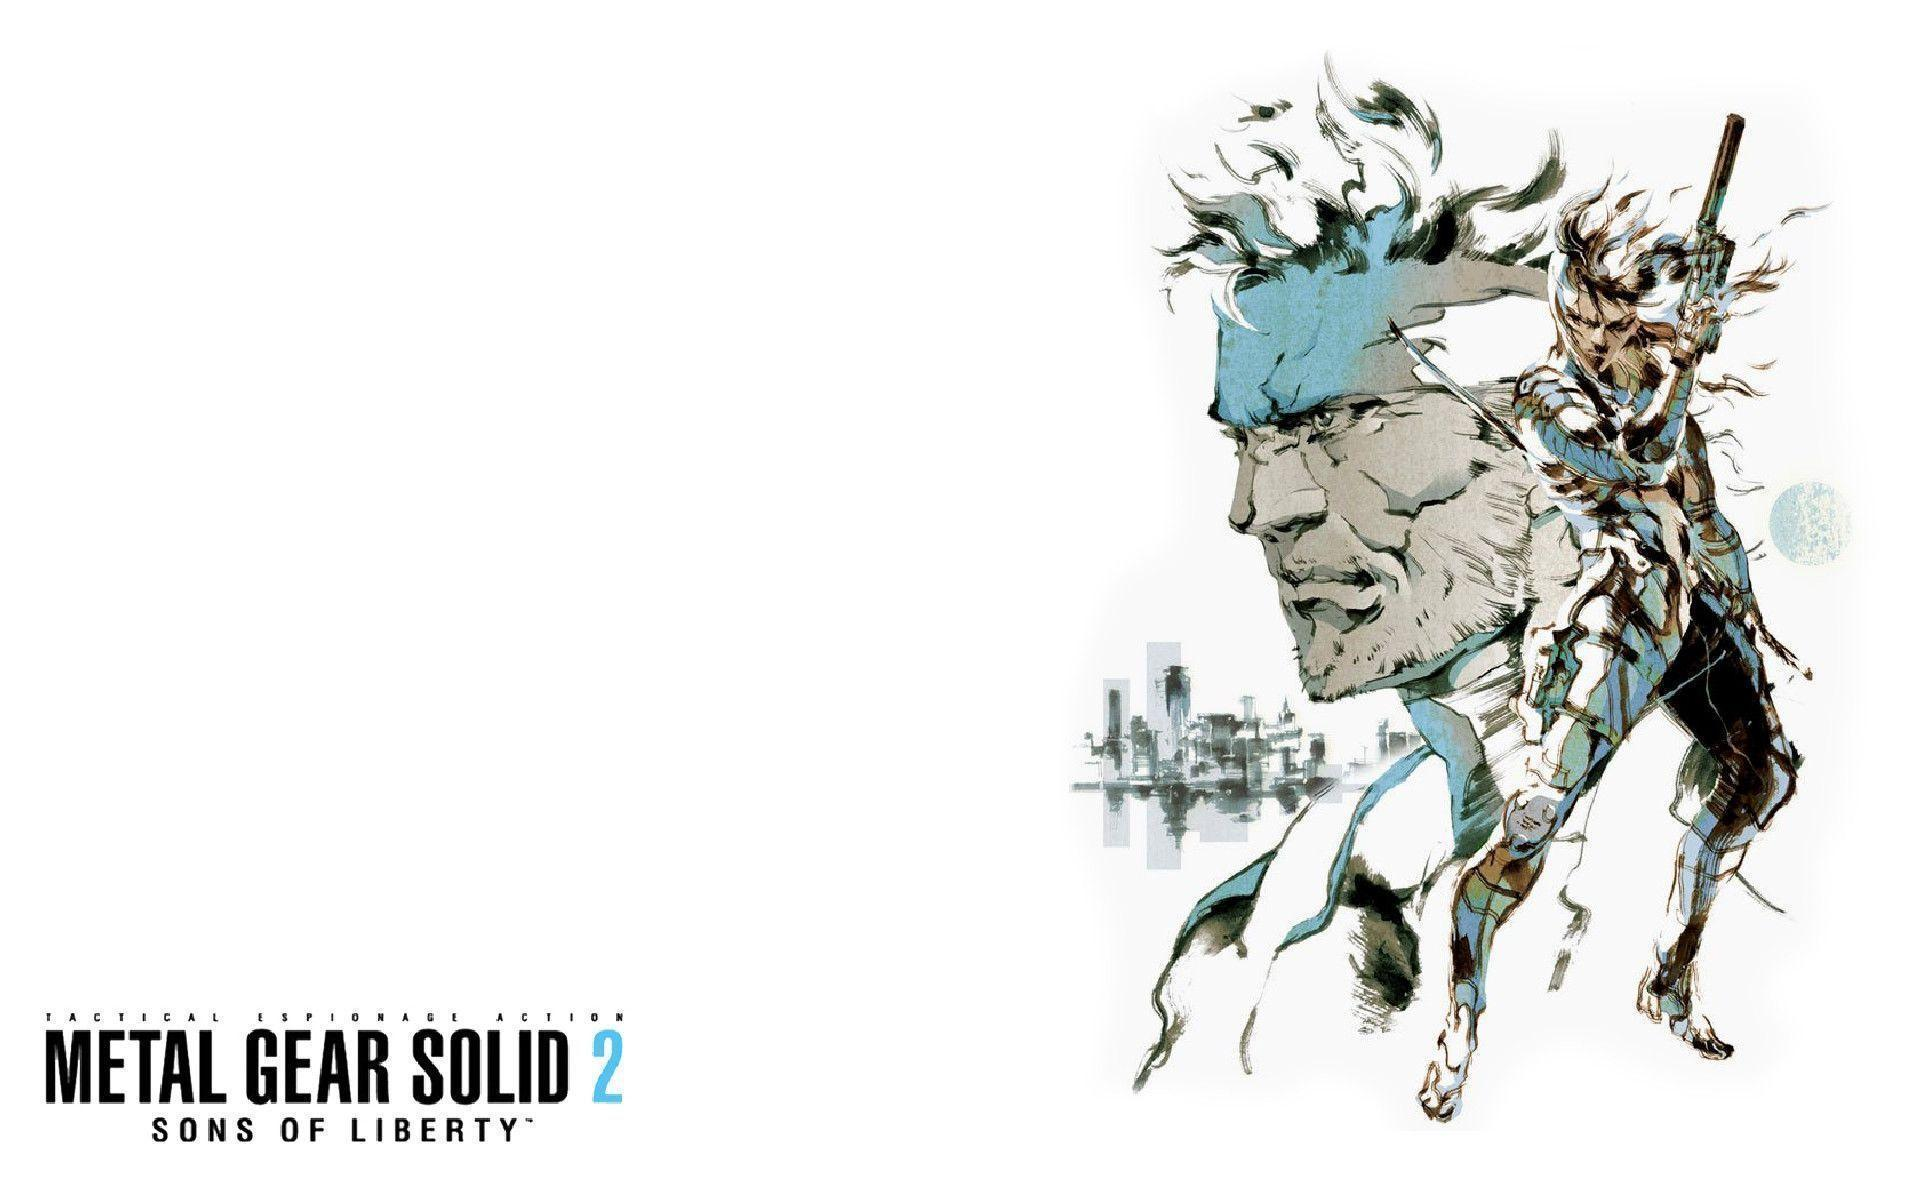 33-339178_metal-gear-solid-wallpapers-me